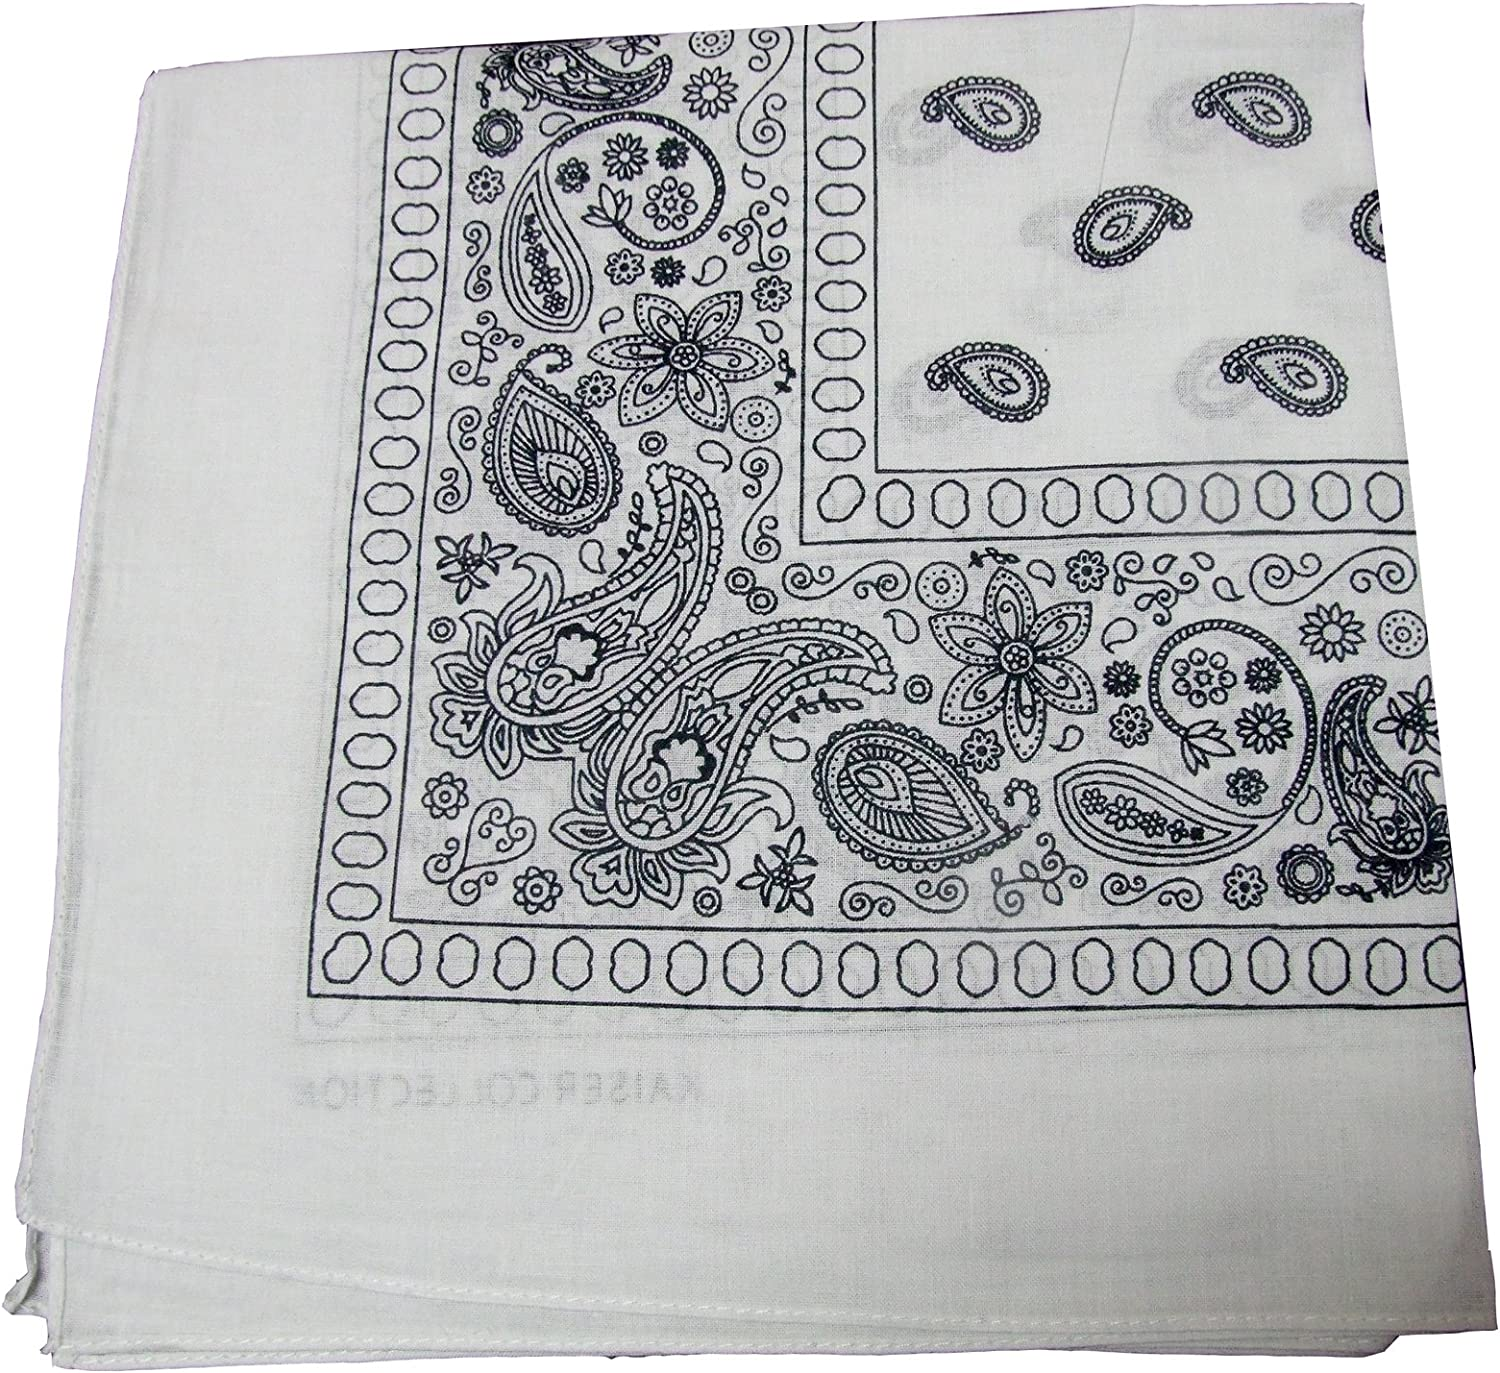 Bandanas by the Dozen 12 units White Max 59% OFF per pack Pa 100% cotton 67% OFF of fixed price